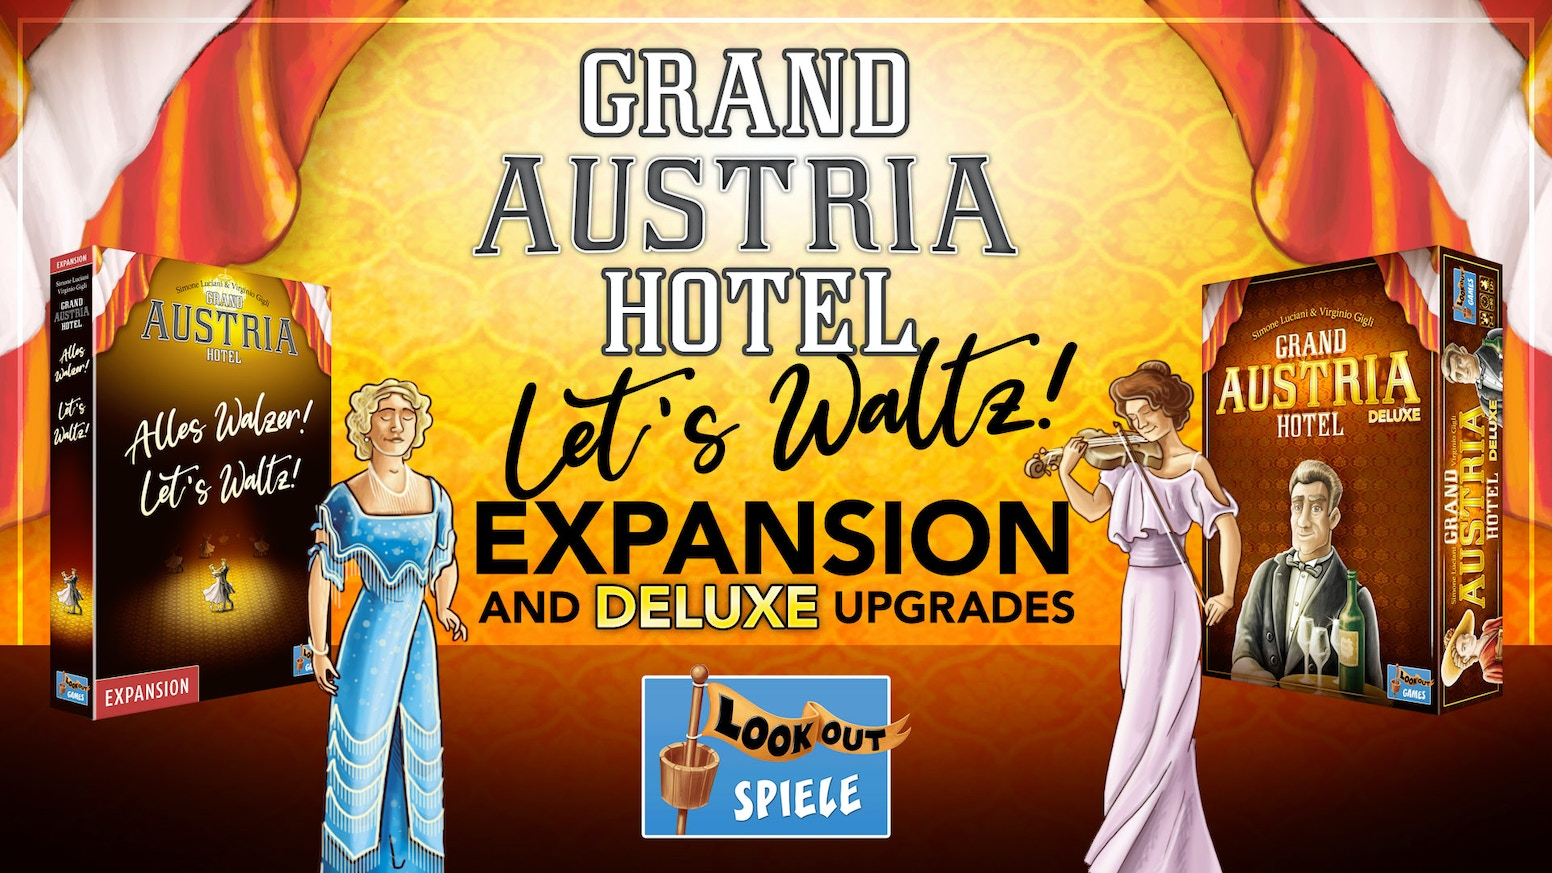 The first big expansion & deluxe upgrades for the award-winning board game Grand Austria Hotel.